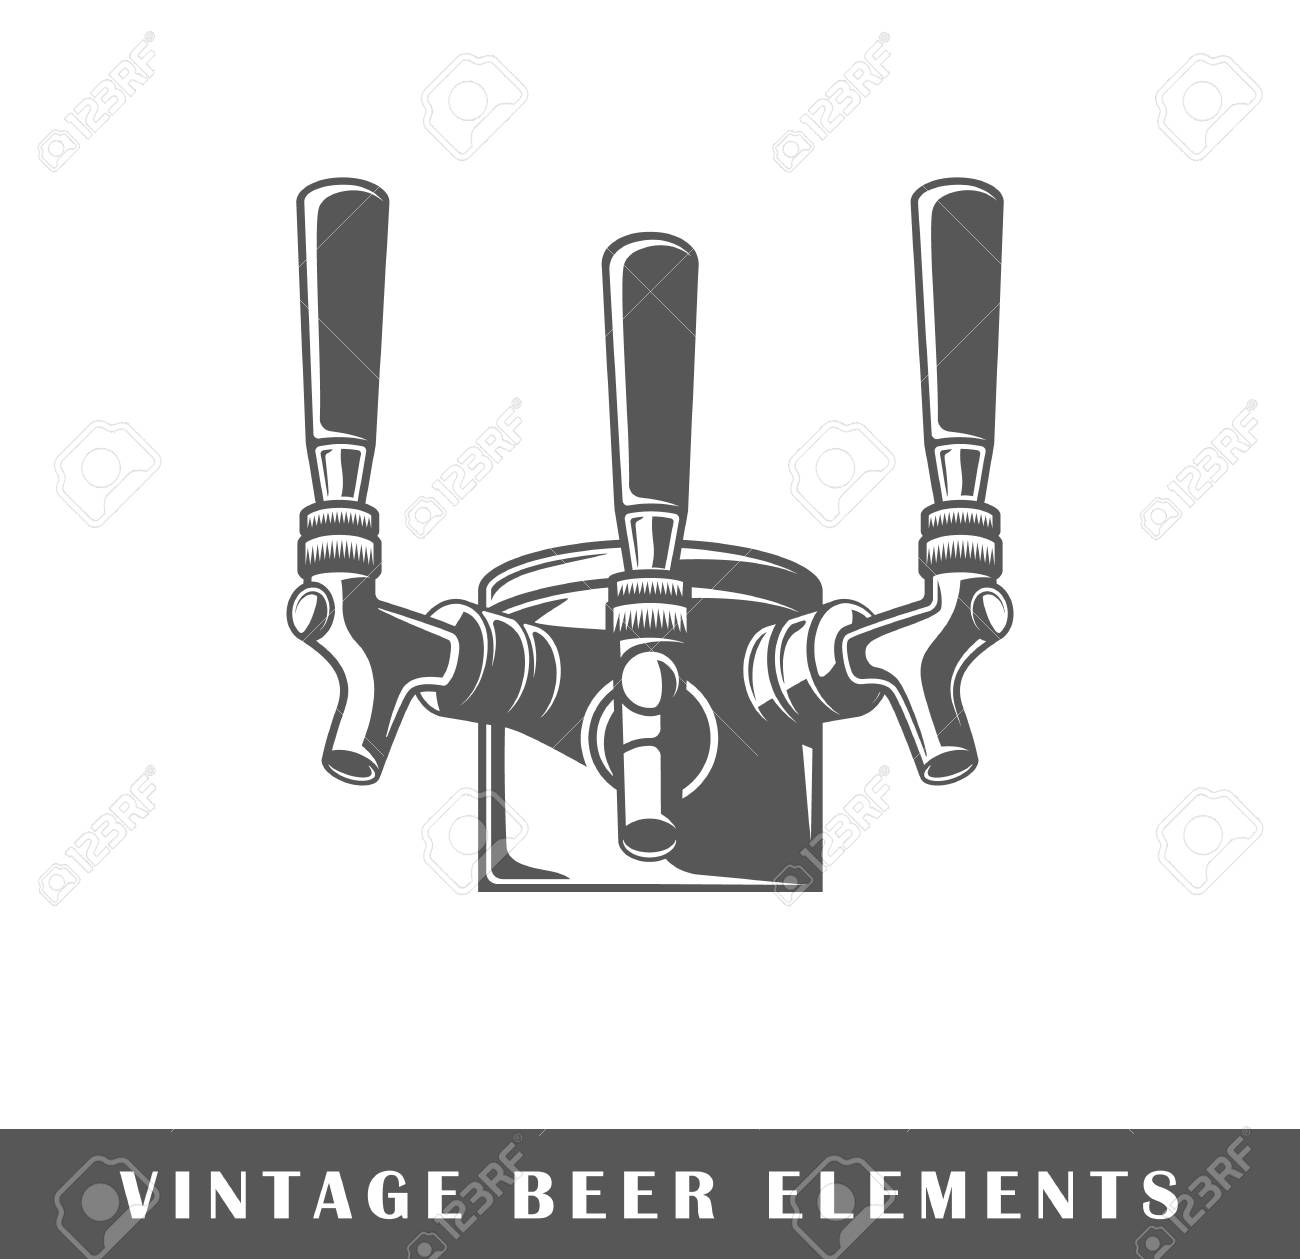 Beer taps isolated Vector illustration - 91821195